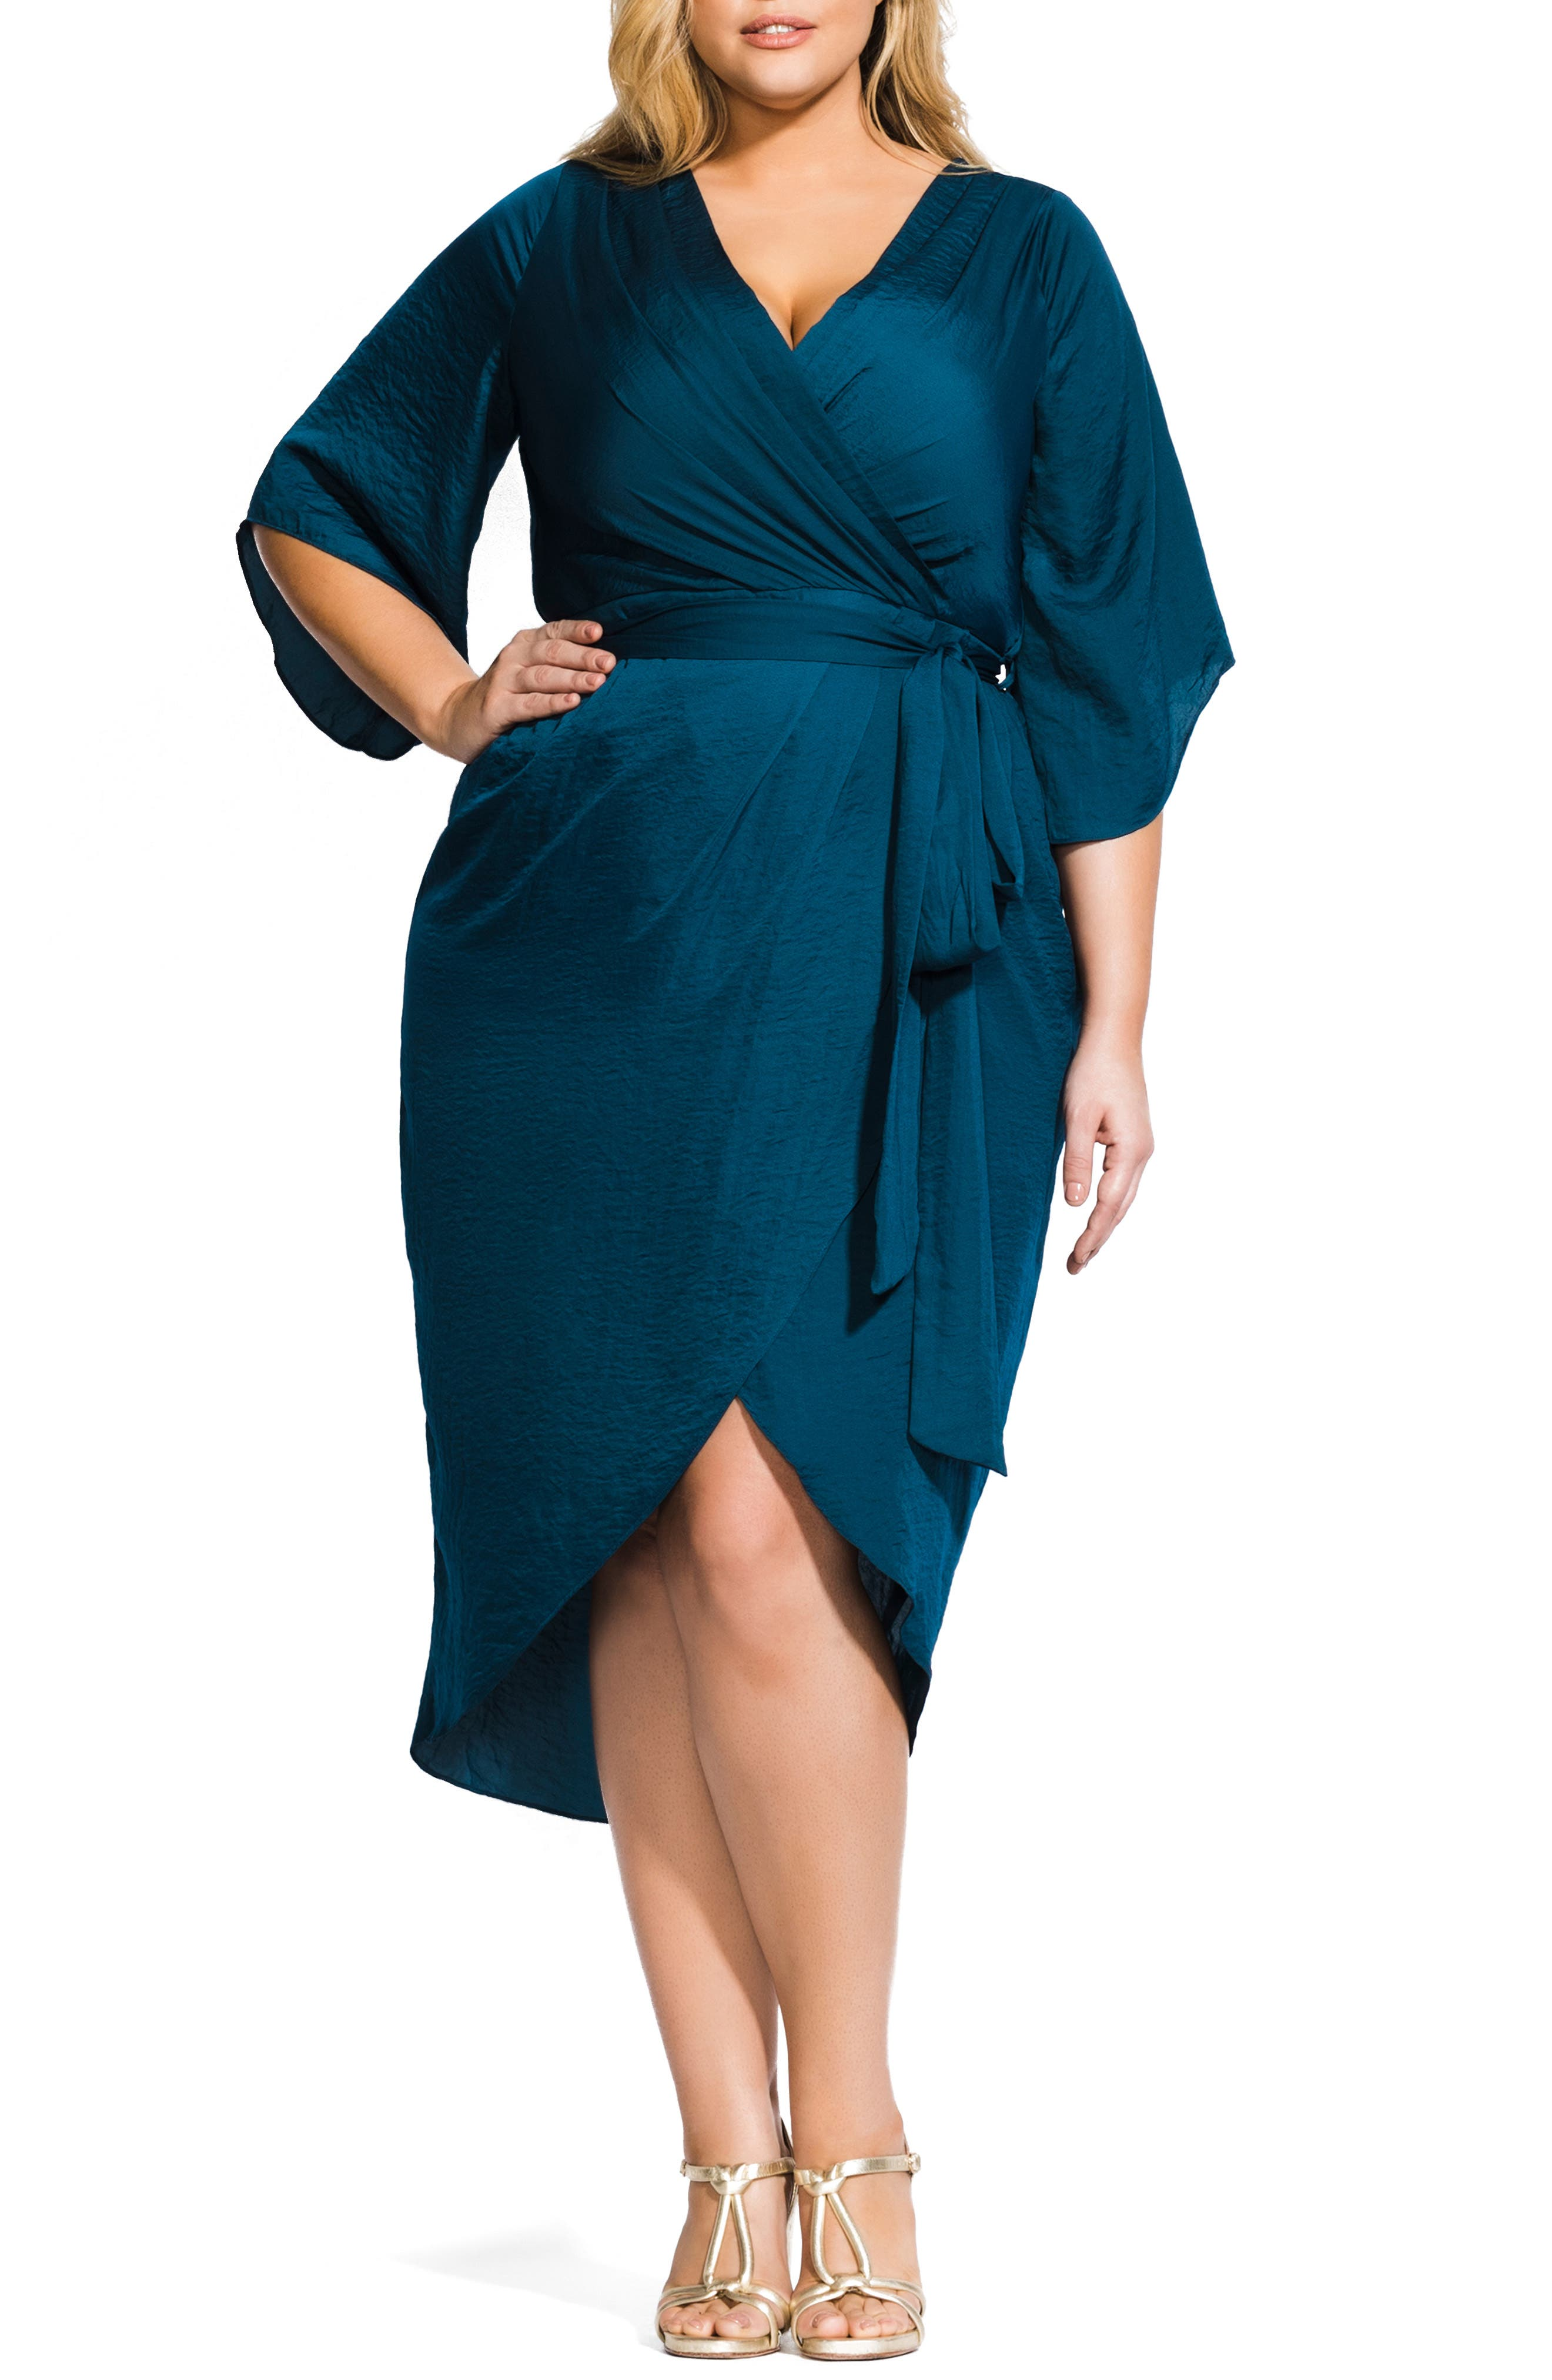 Opulent Hammered Satin Wrap Style Dress,                             Main thumbnail 1, color,                             TEAL